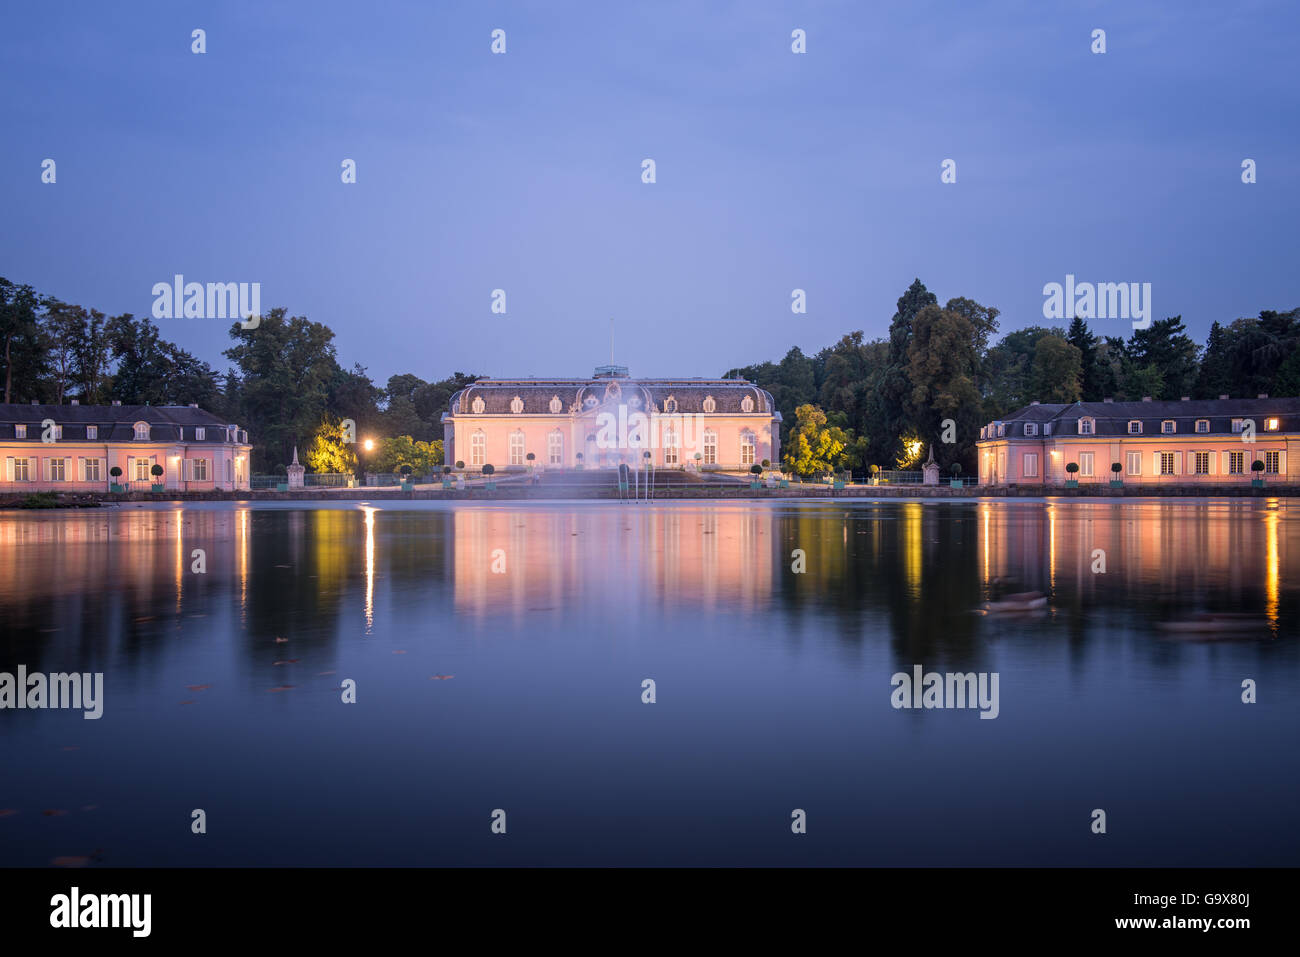 Palace in Dusseldorf Benrath, Germany Stock Photo